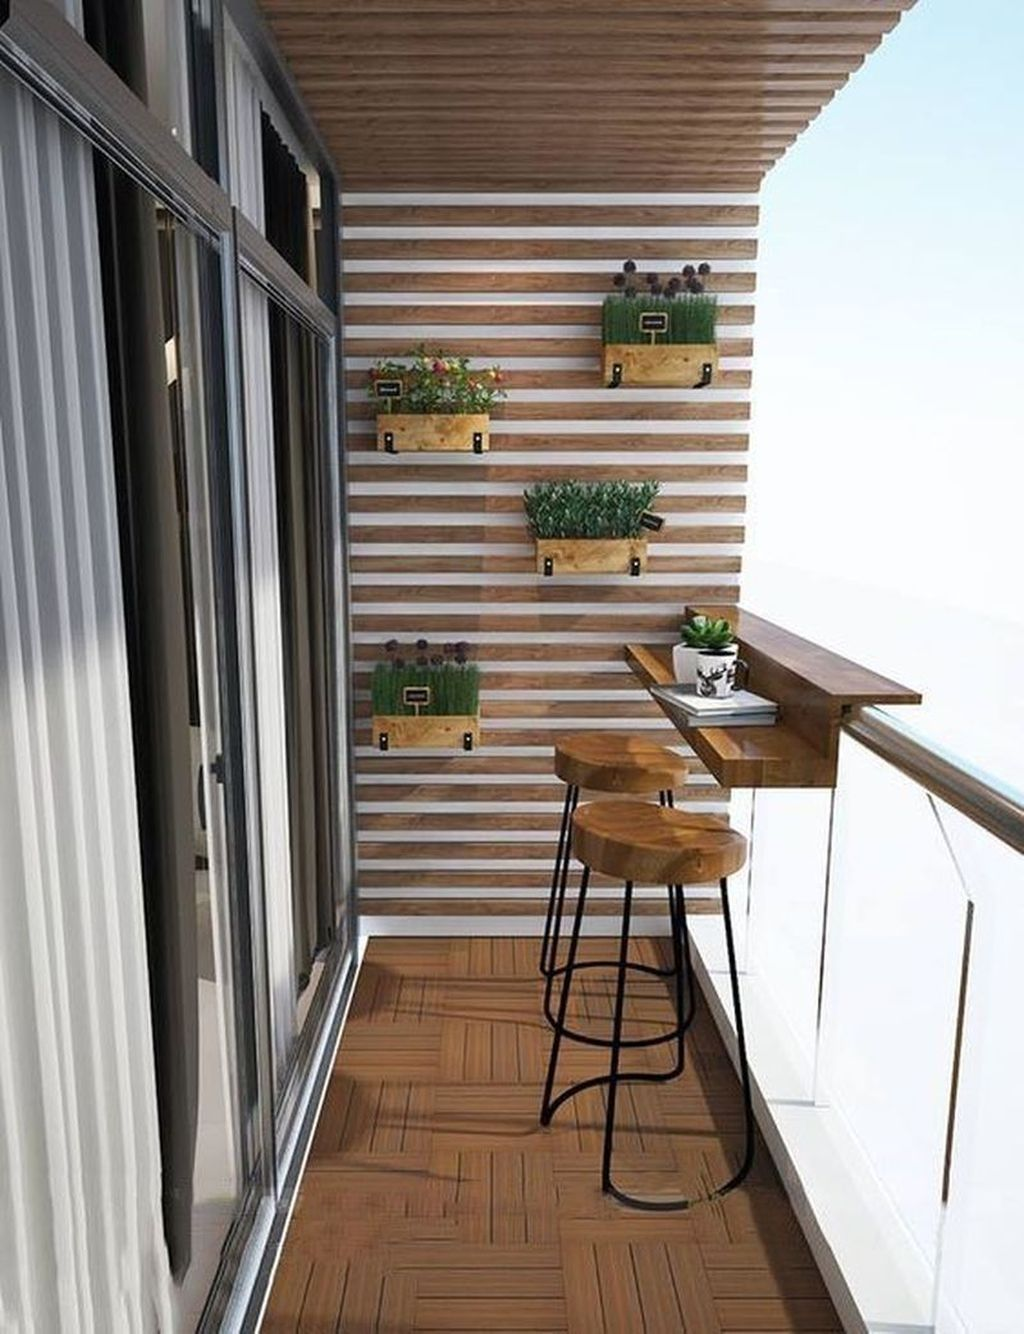 40+ Splendid Balcony Decorating Ideas On A Budget To Try #balcony